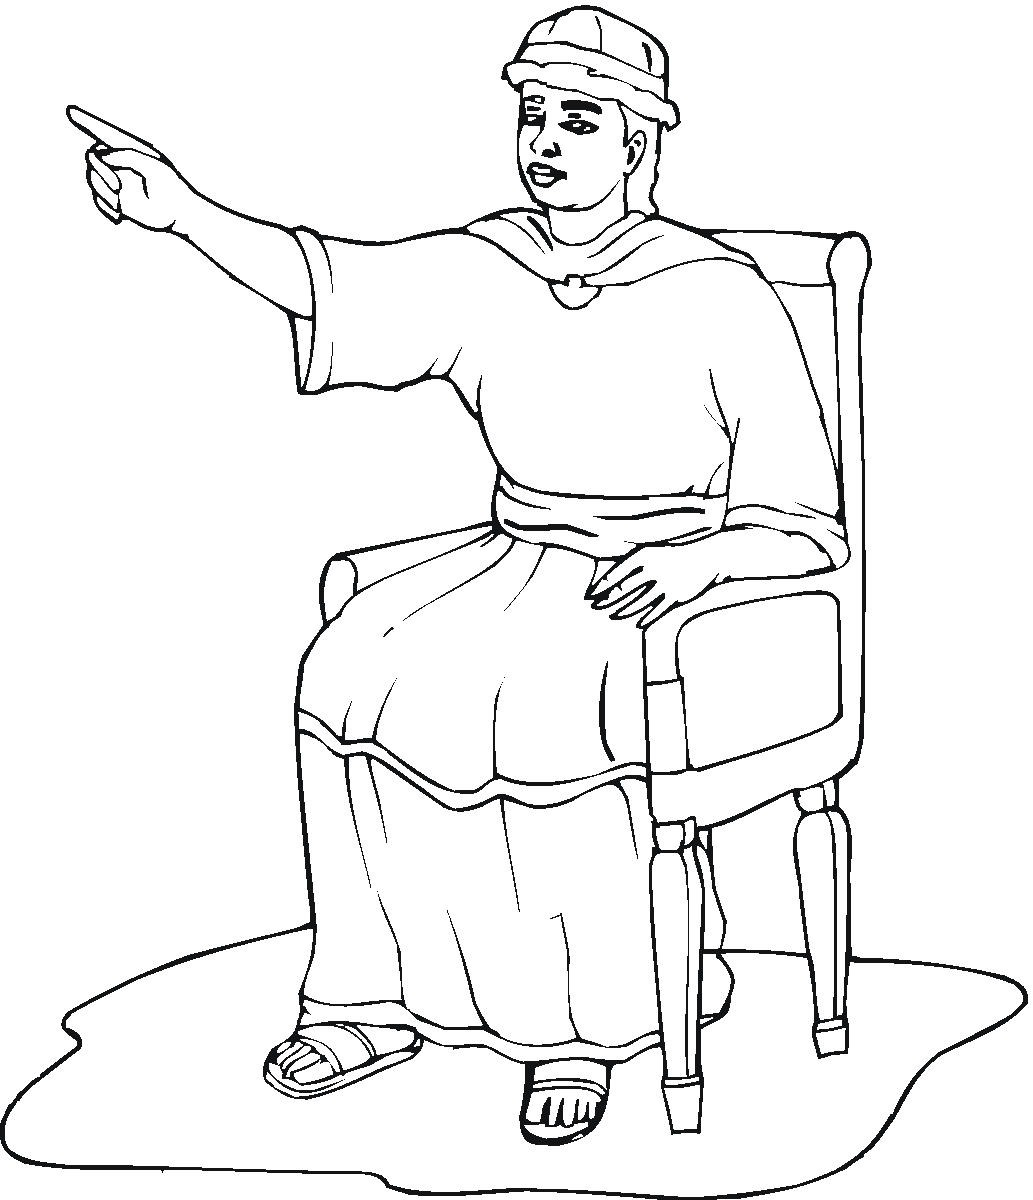 David Saul Coloring Pages http://imagixs.com/king-saul-and-david-coloring-pages/